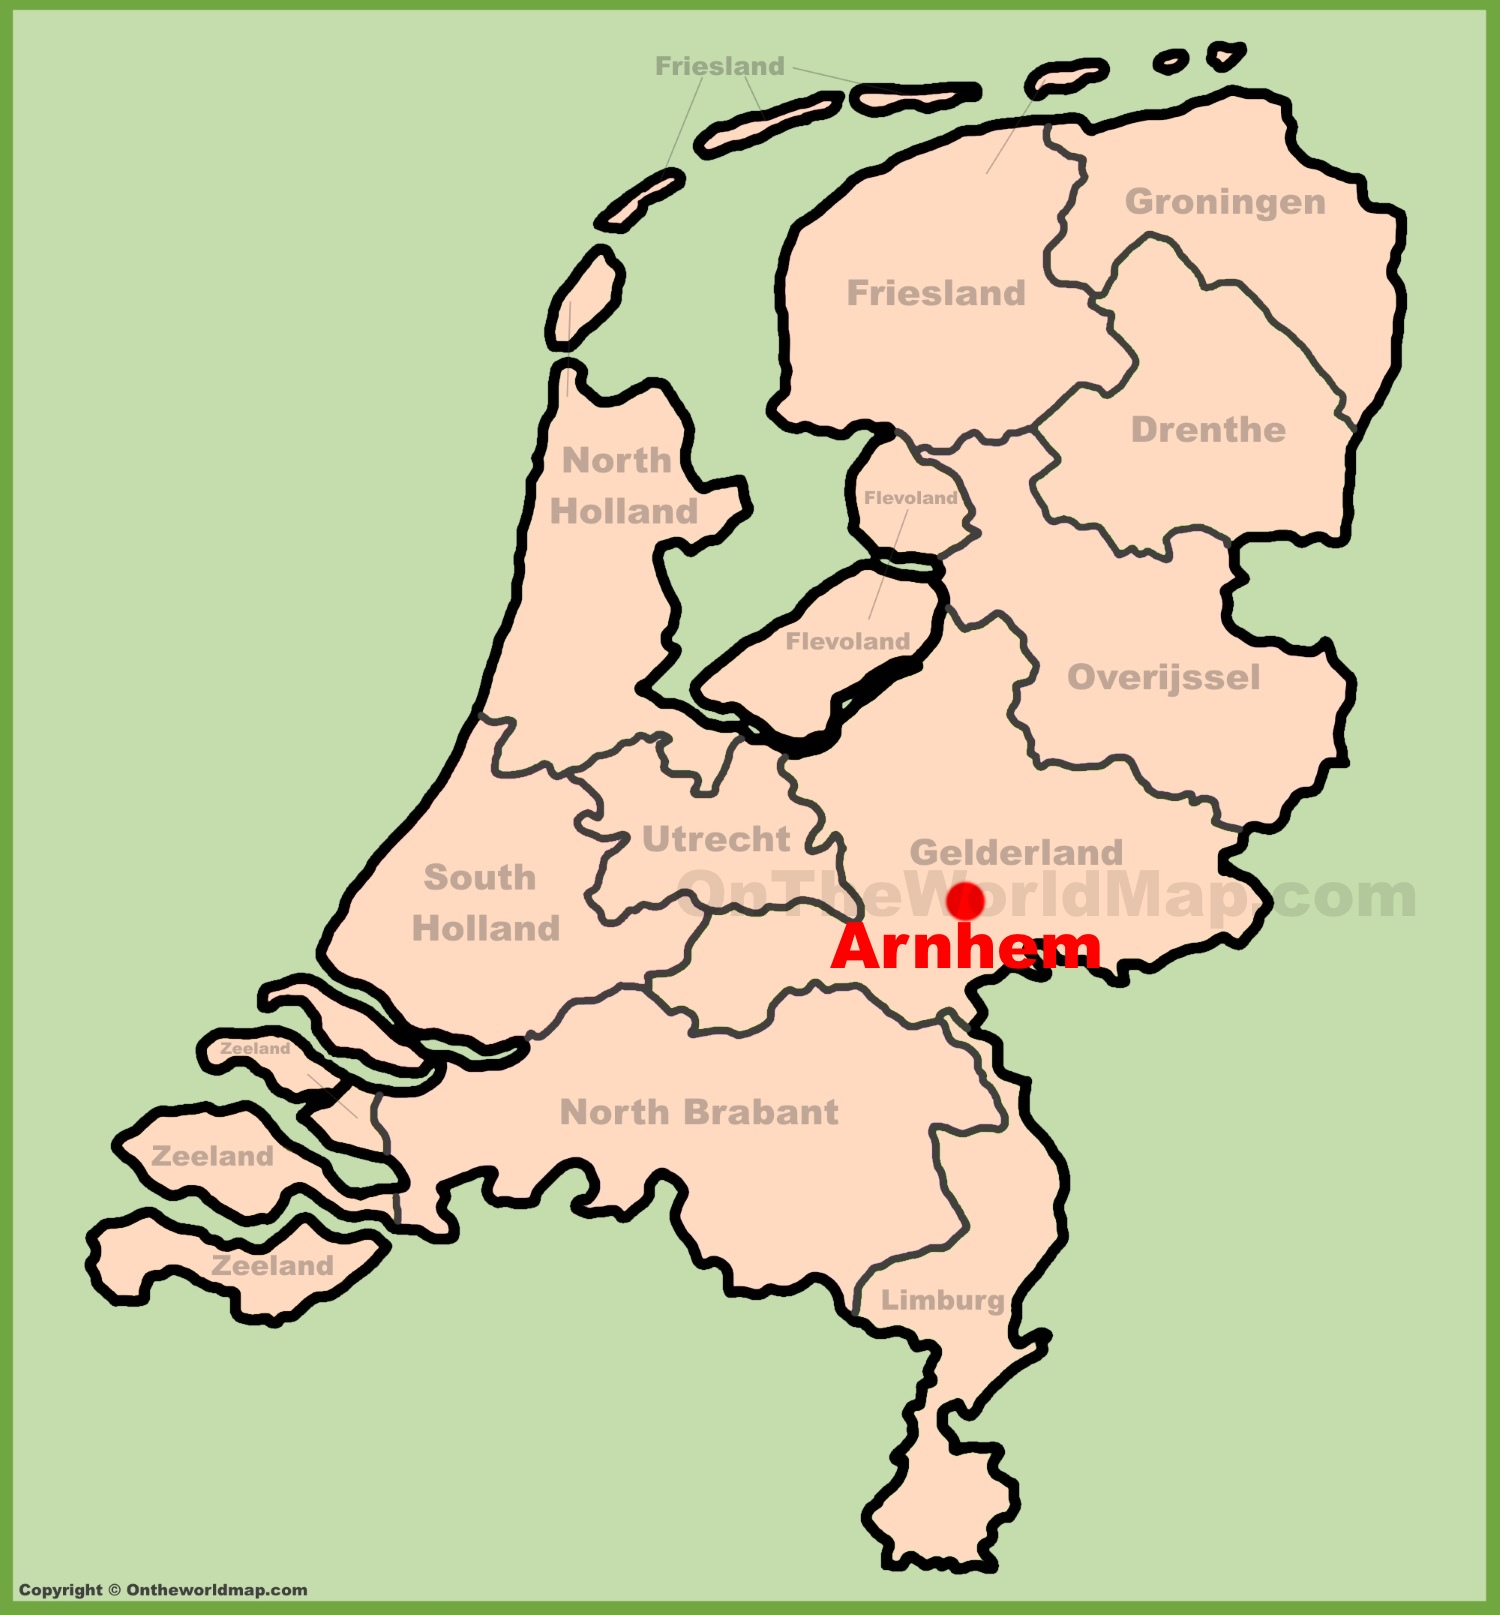 Arnhem location on the Netherlands map